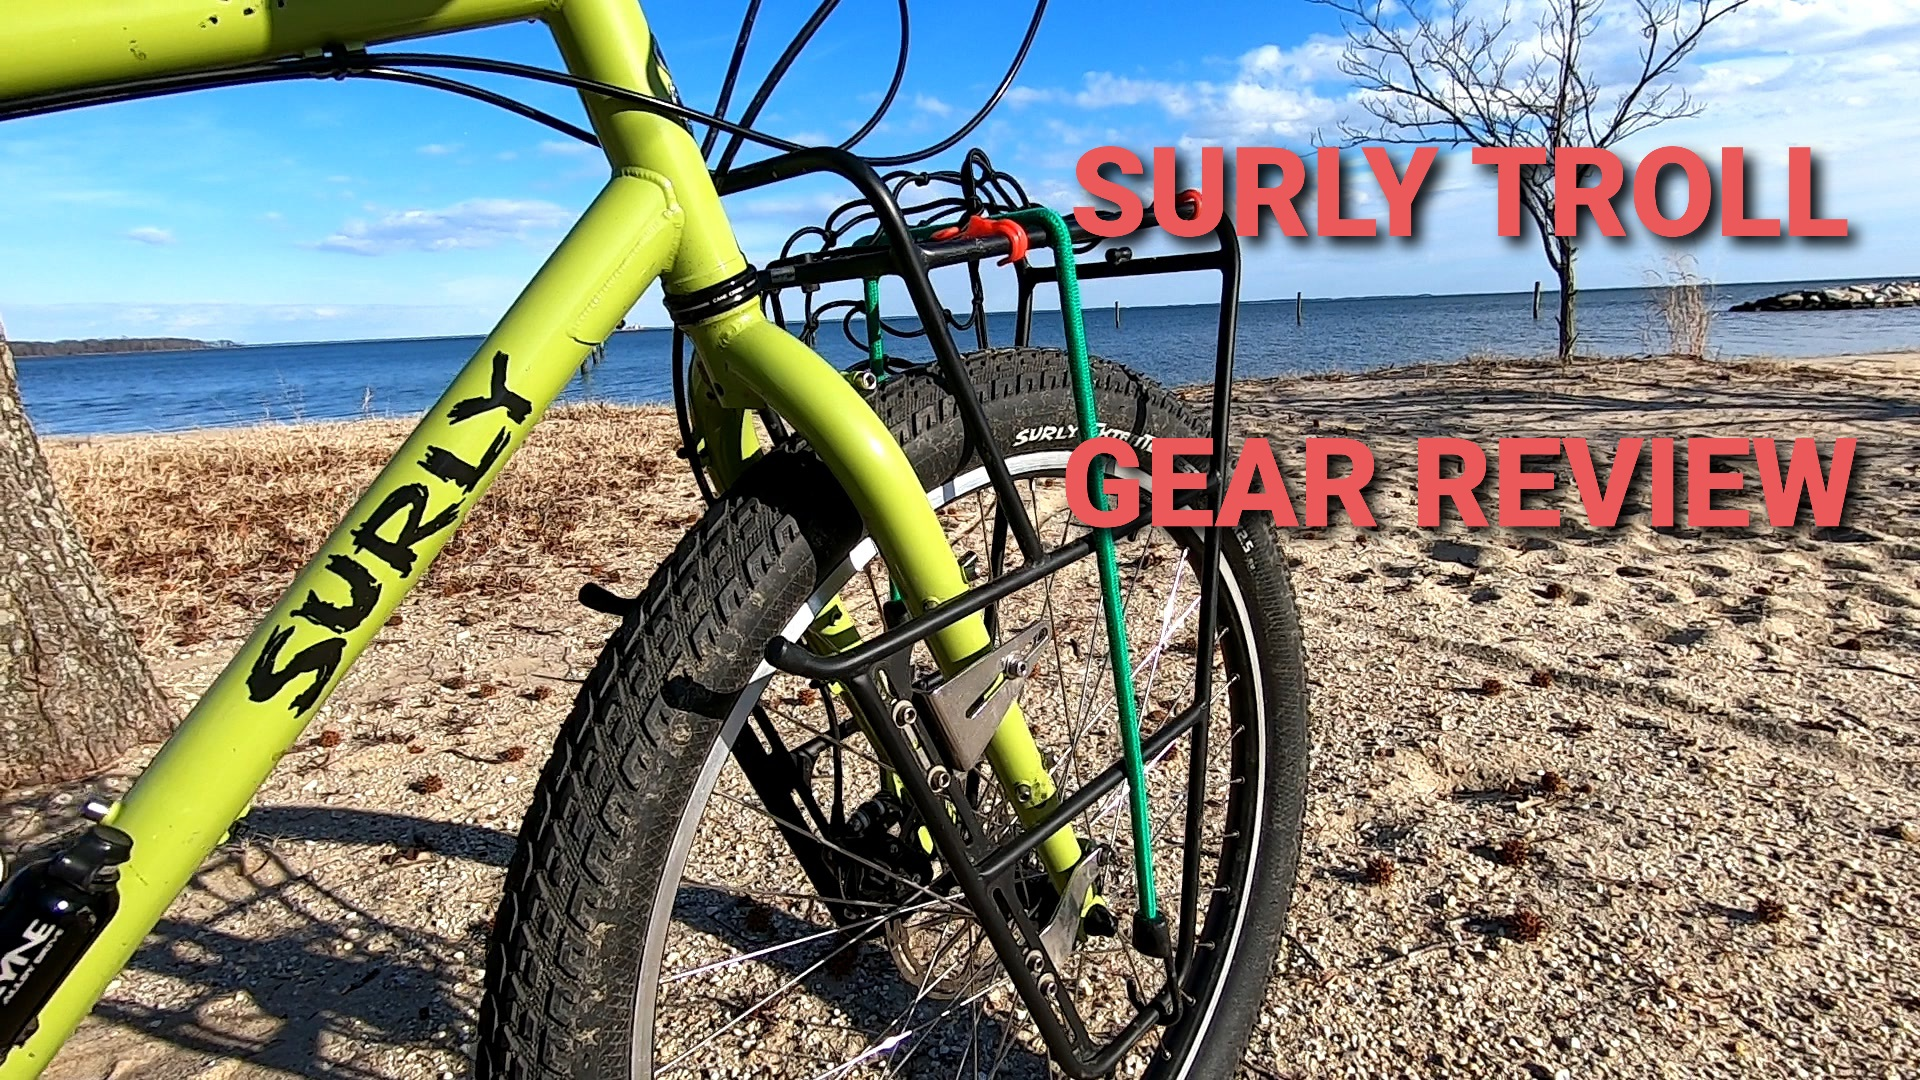 Surly Troll Gear Review